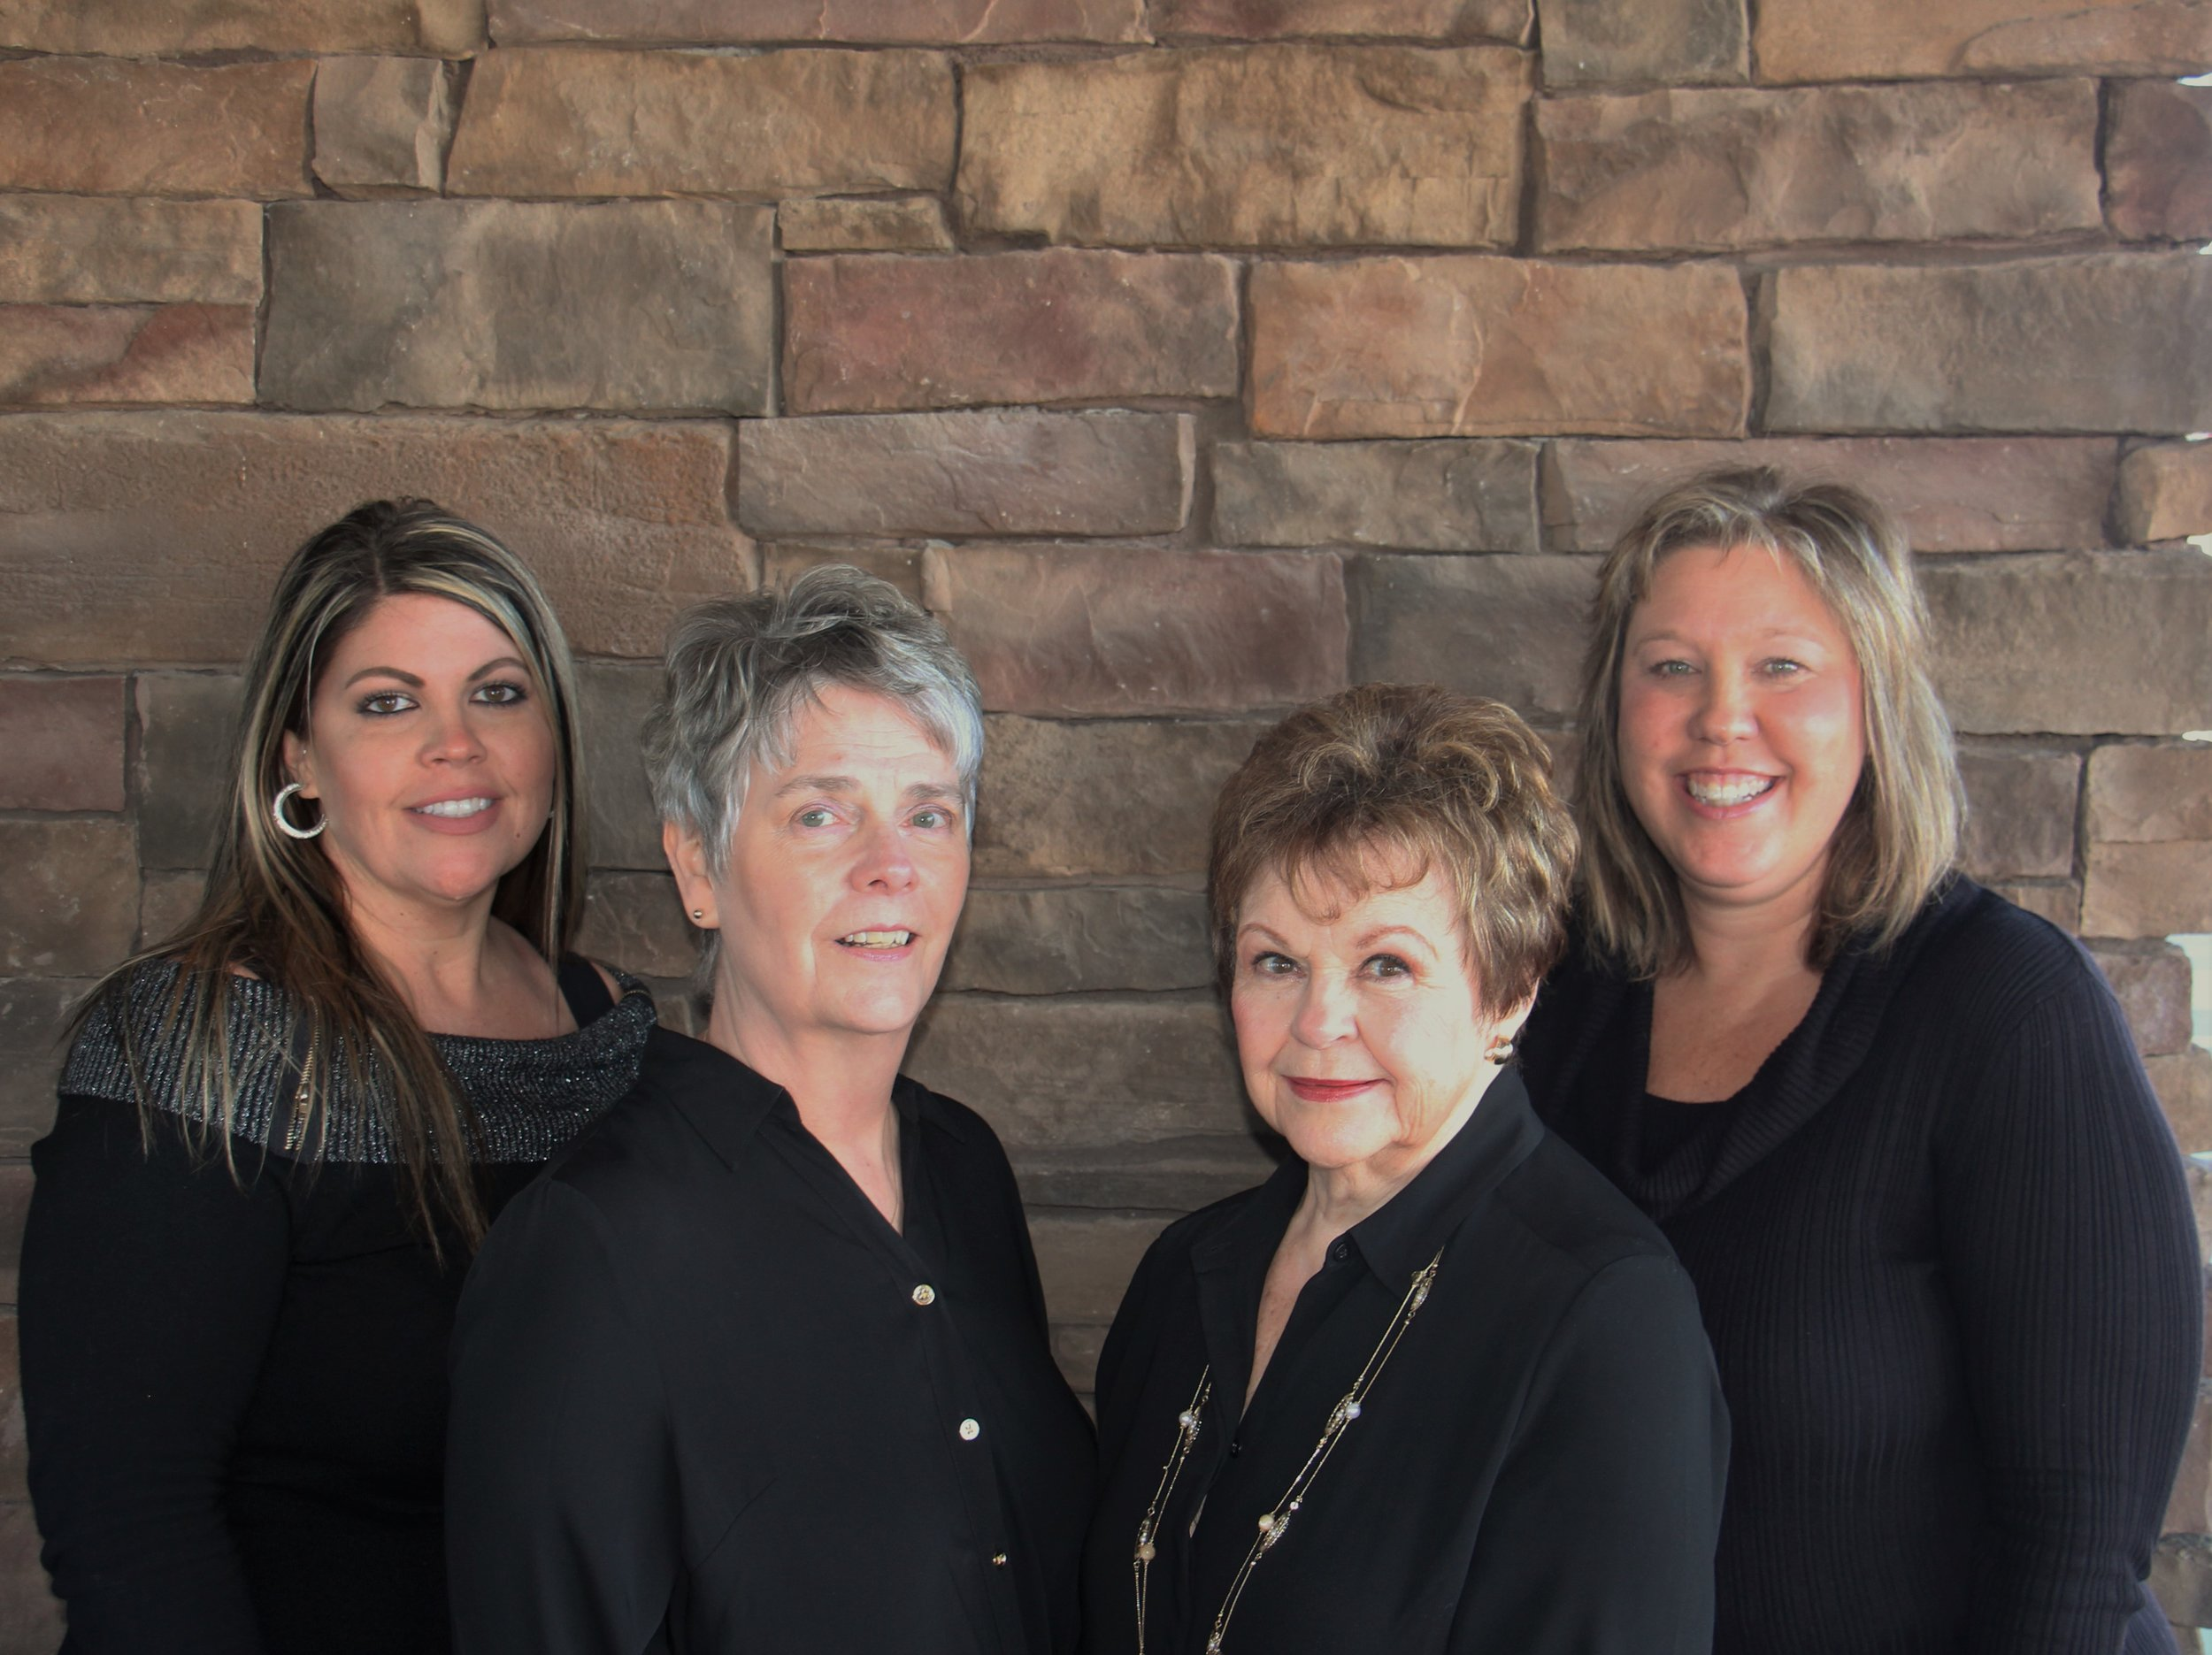 Meet our Team:  Raquel Olson | Joan Callies | RaeGene Larson | Tina Spielmann